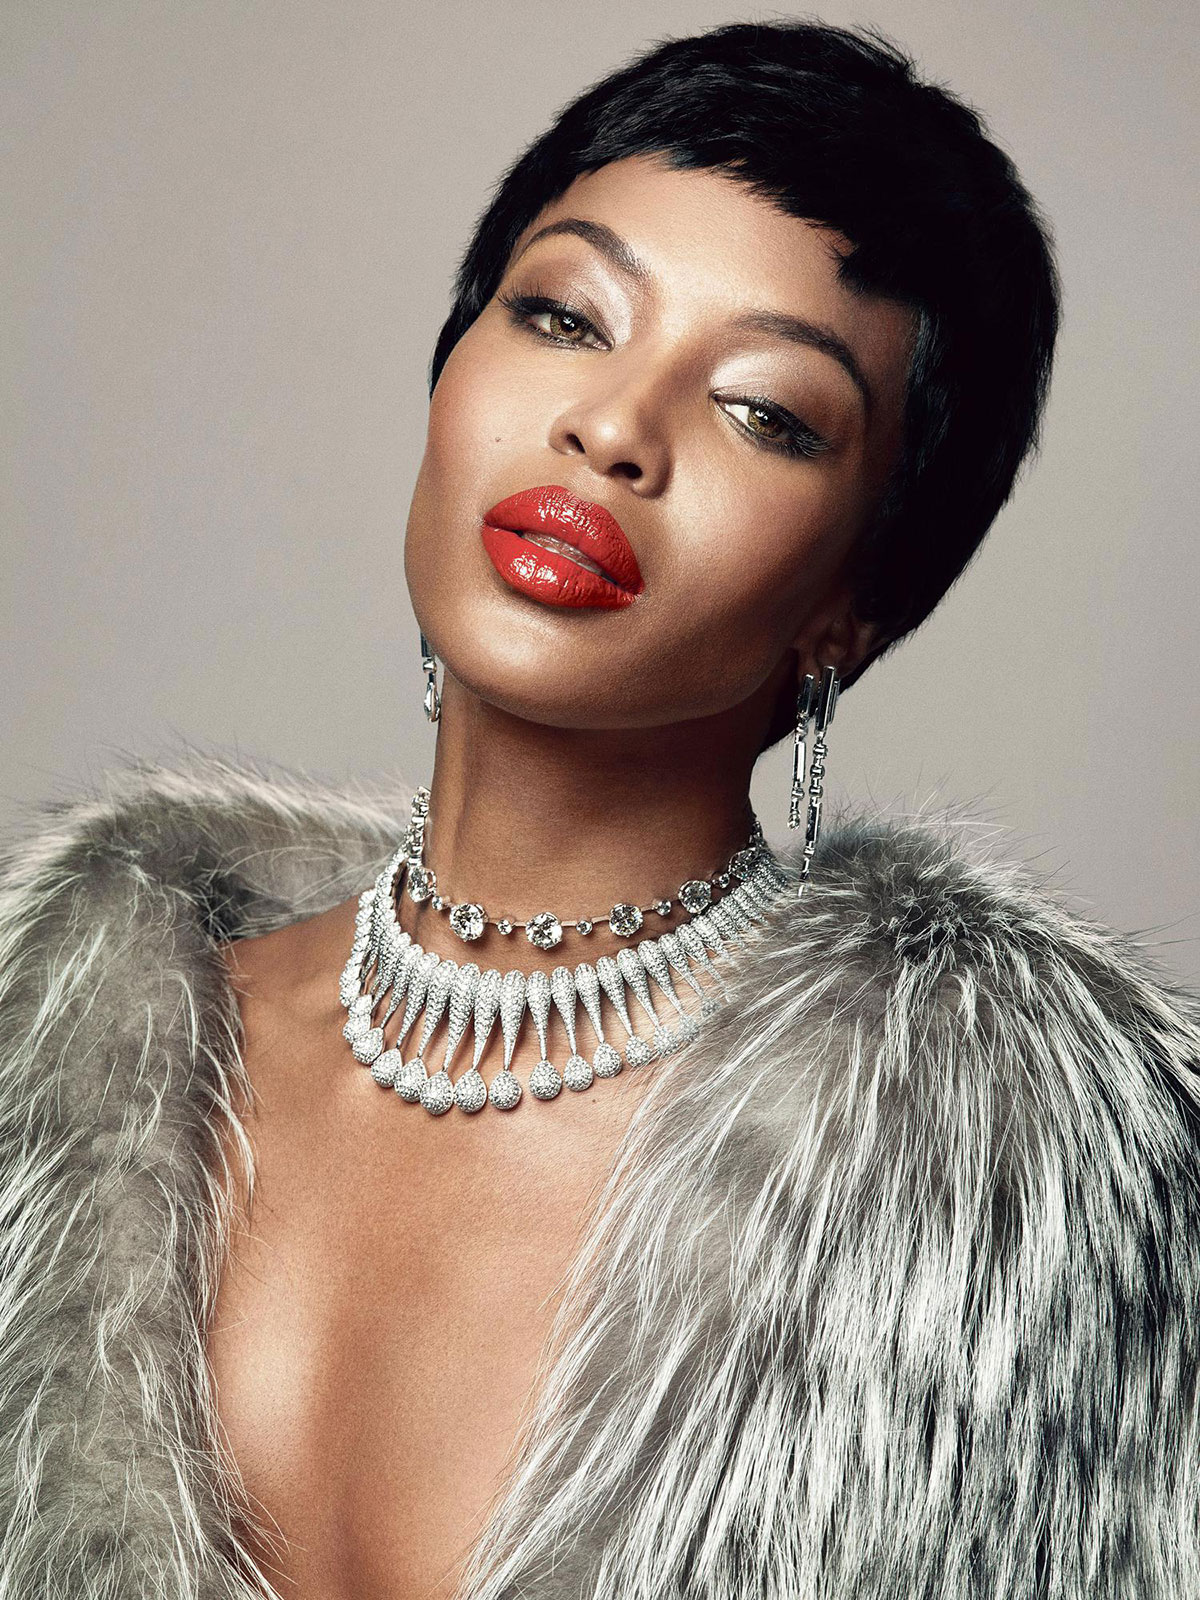 NAOMI-CAMPBELL-in-Madame-Figaro-December-2014-Issue-9.jpg